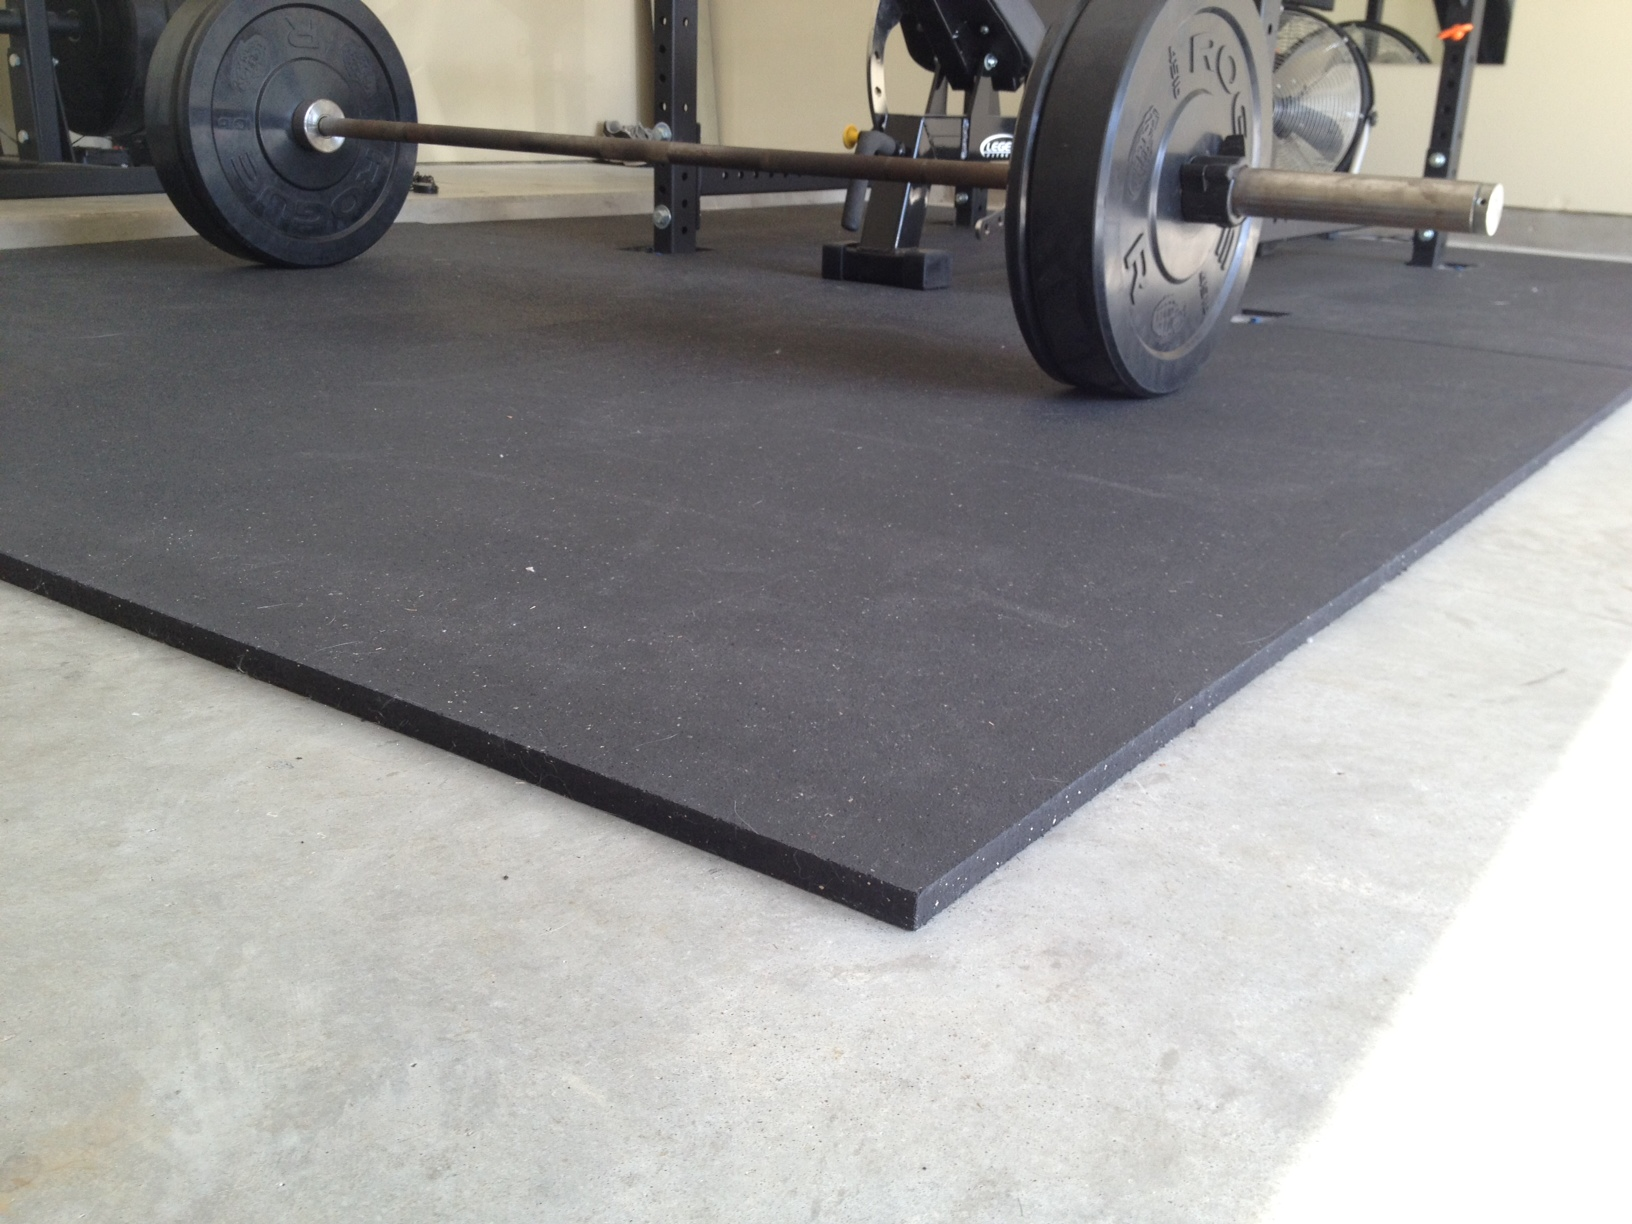 Garage Gym Flooring Options - Protect your Equipment and Foundation